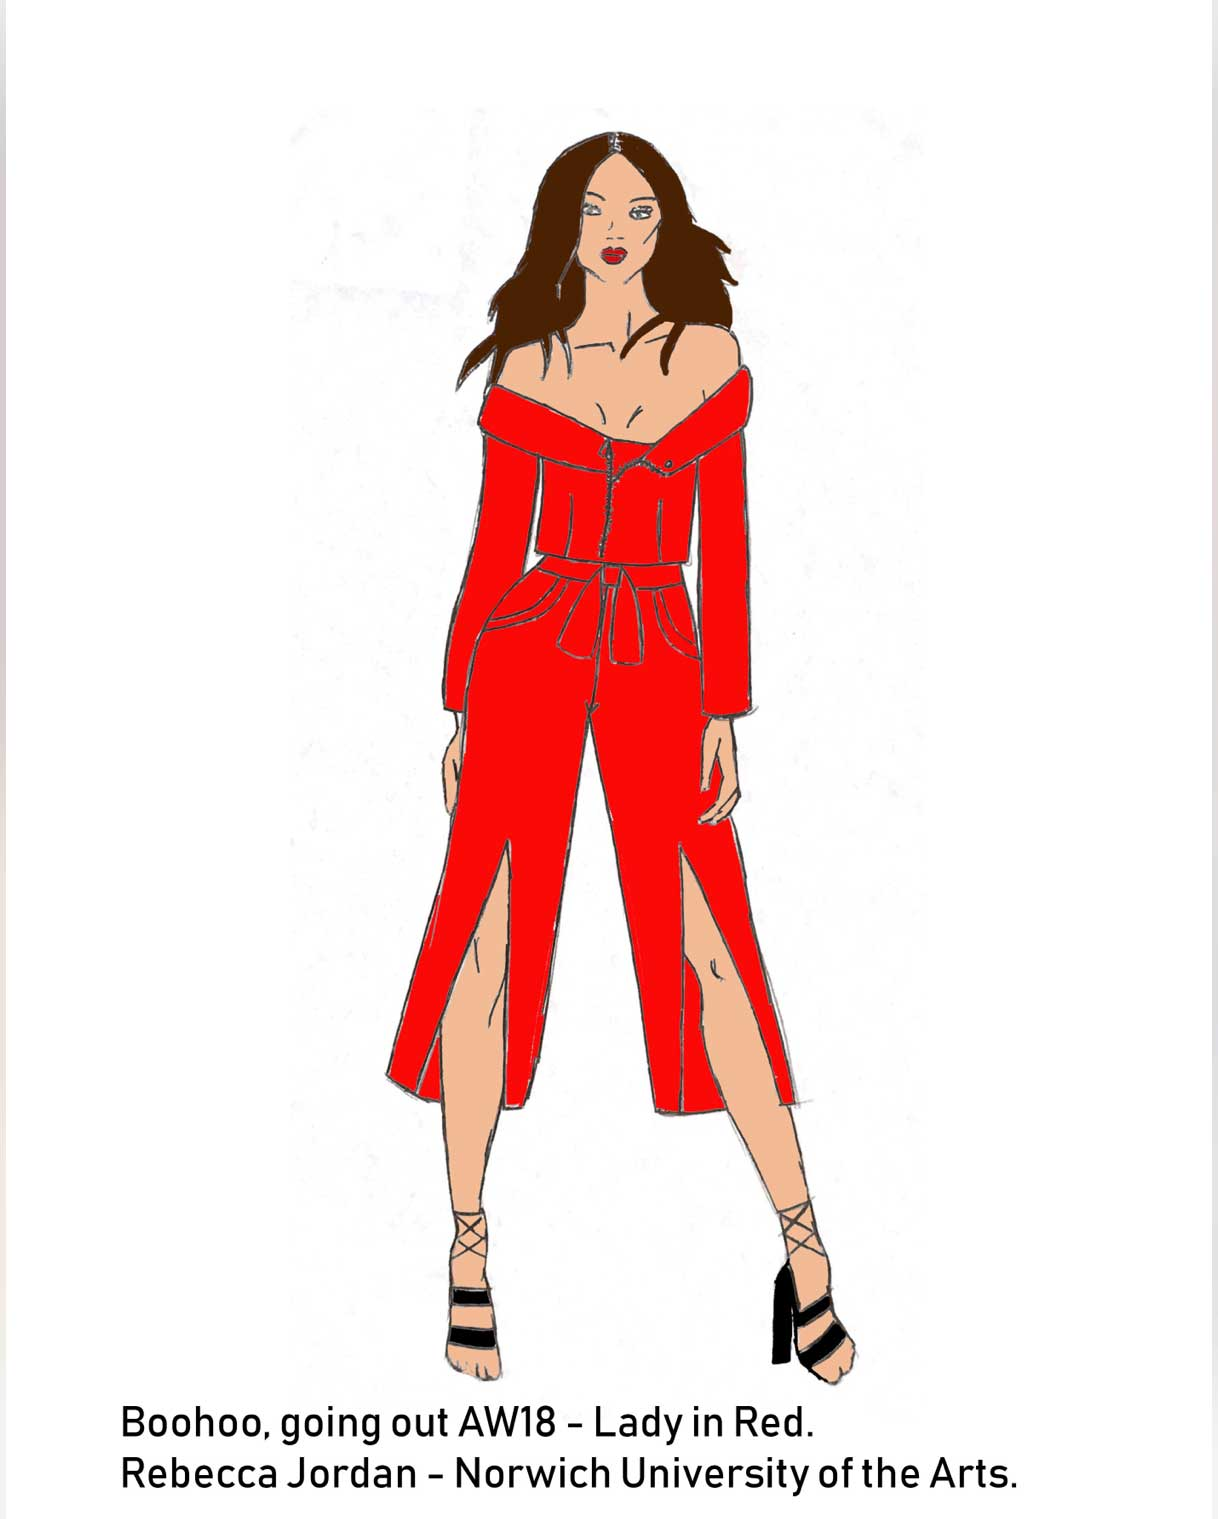 Rebecca Jordan illustration of 'Lady in Red' for Boohoo